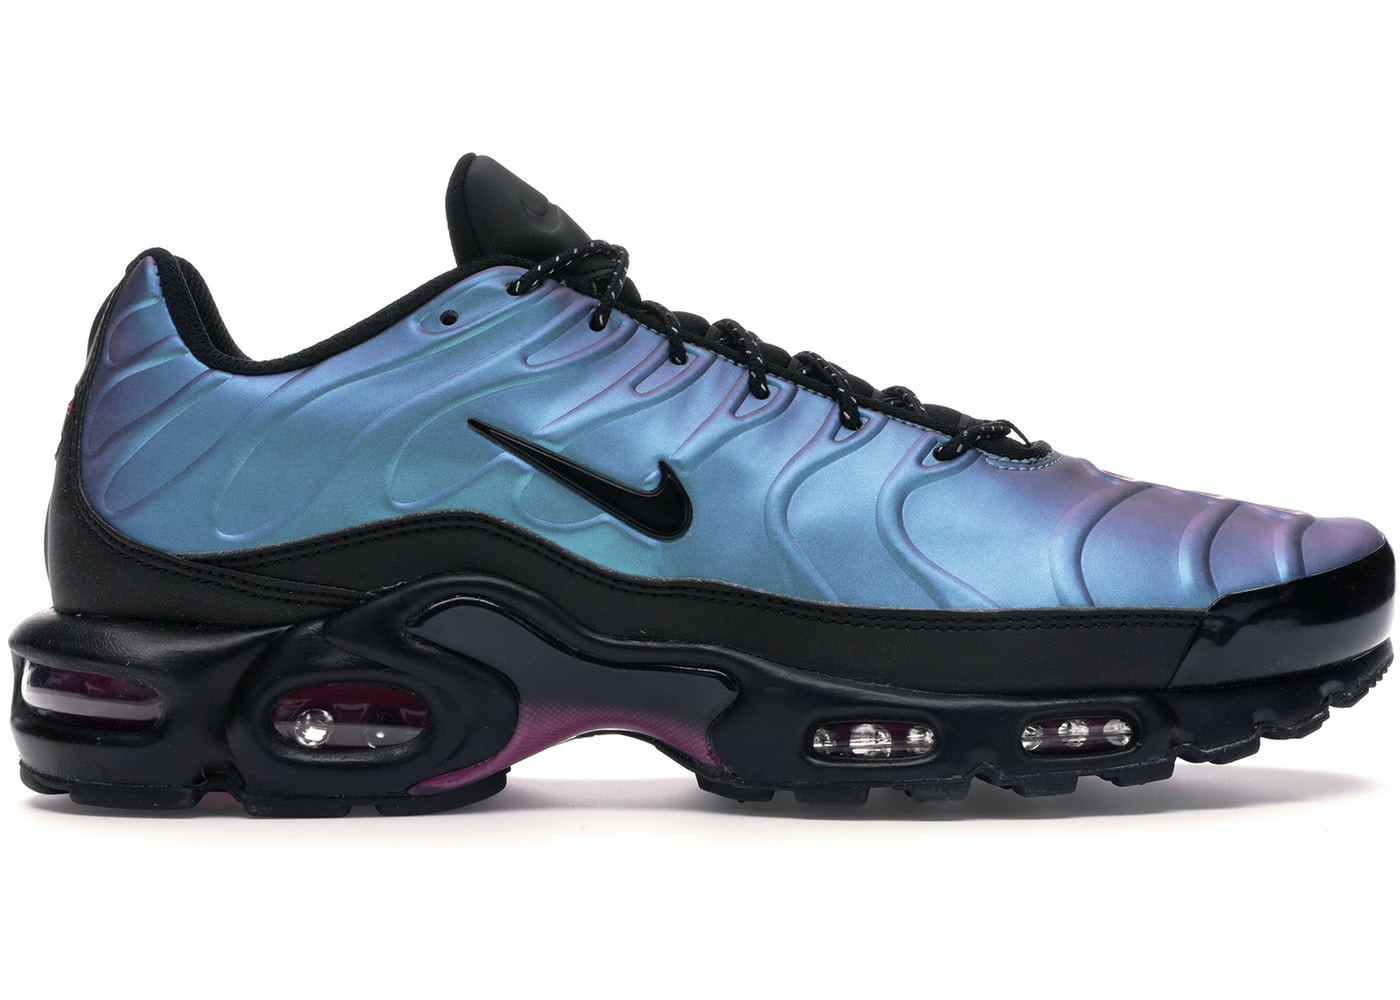 sports shoes 2d5ca 75faf Buy Nike Air Max Plus Shoes & Deadstock Sneakers